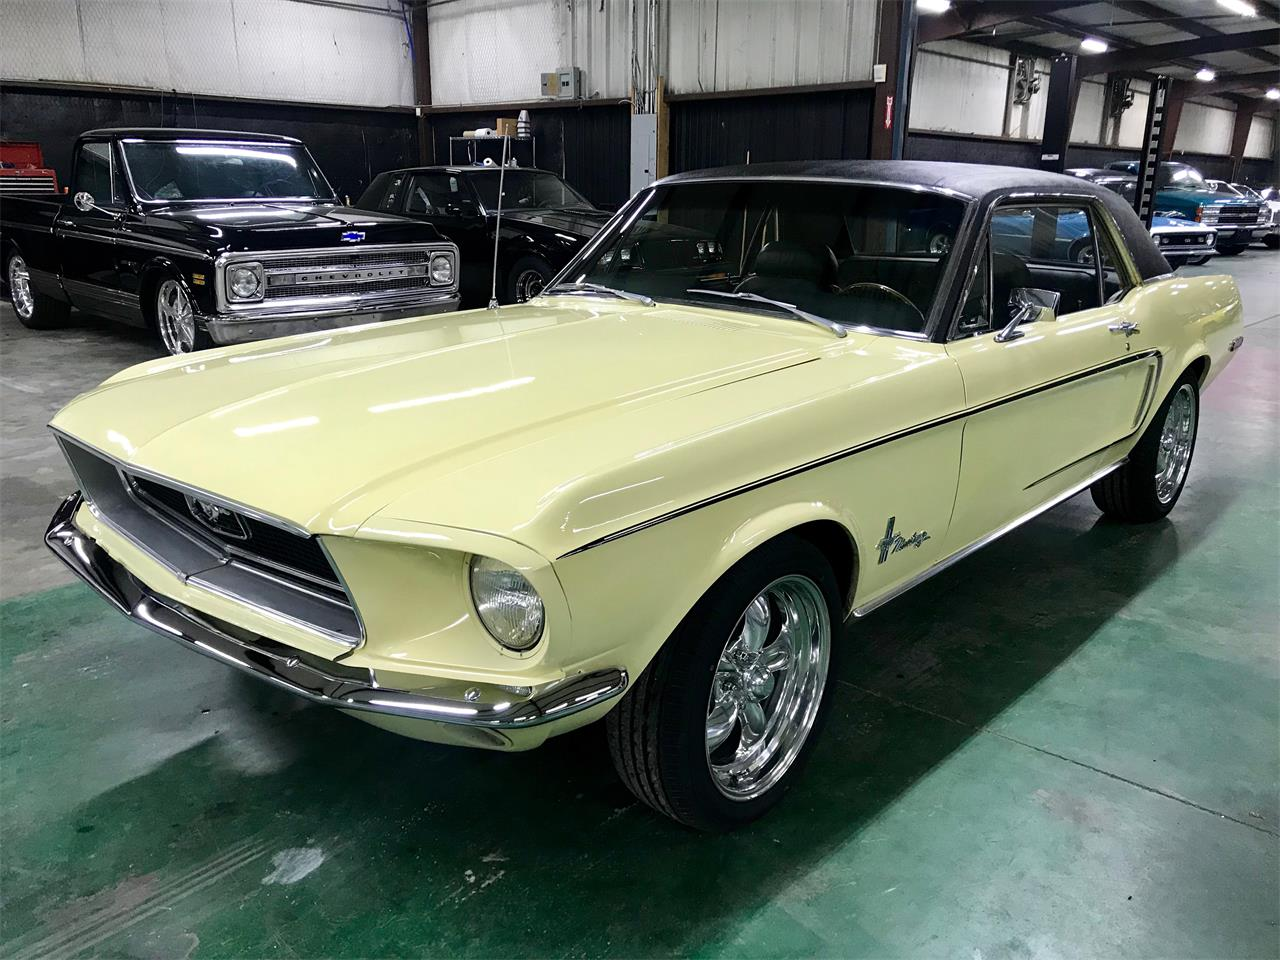 Large picture of 68 mustang oqot